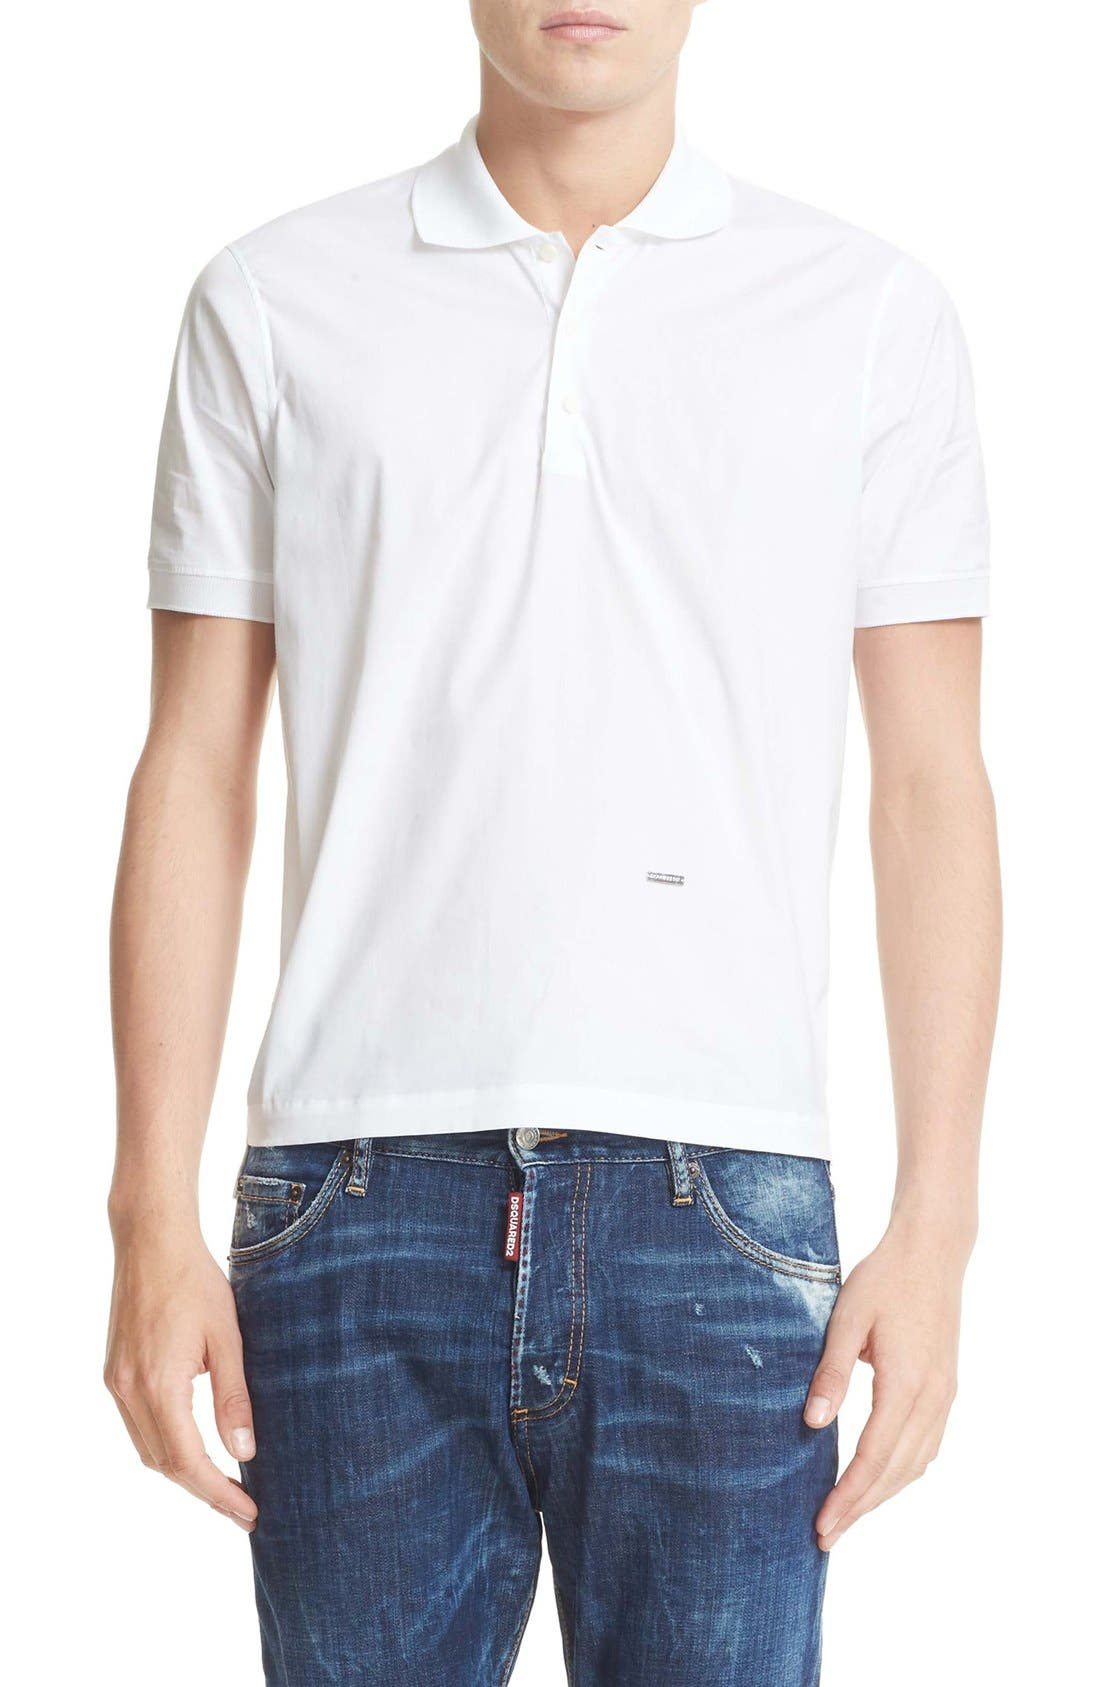 Alternate Image 1 Selected - Dsquared2 Extra Trim Fit Polo